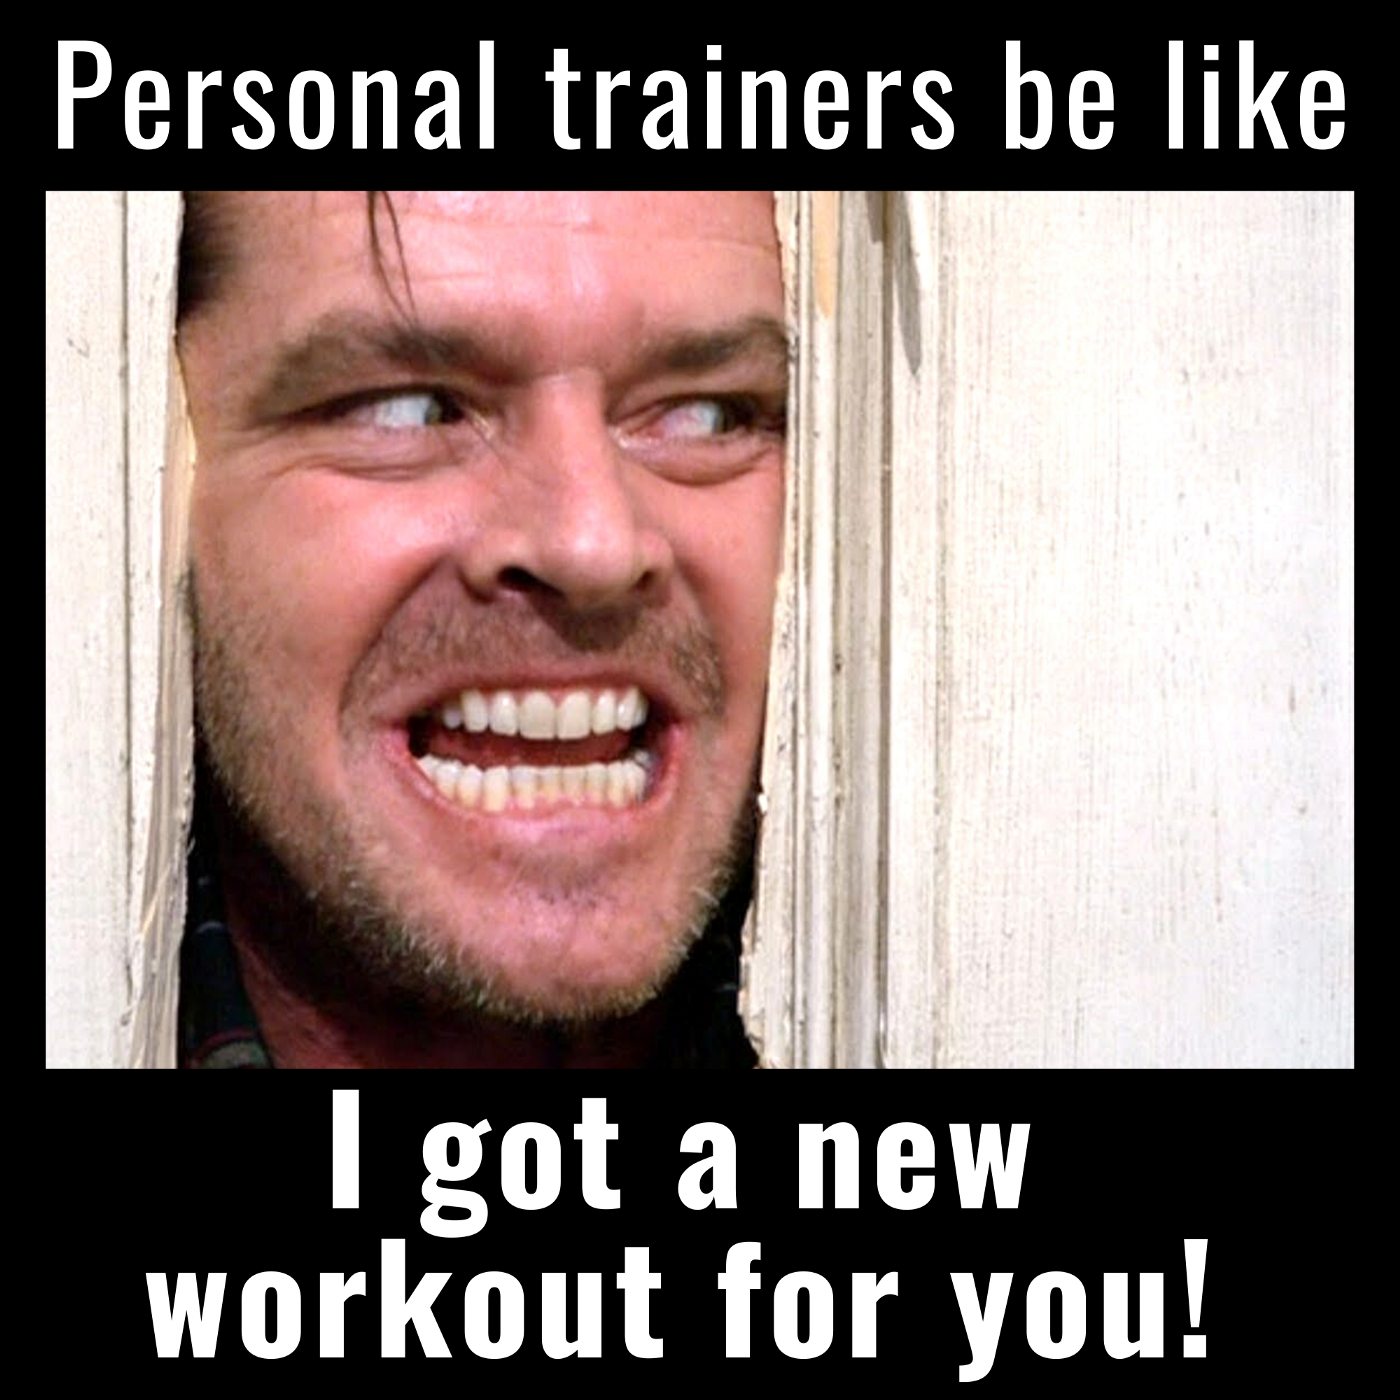 personal trainer workout fitness gym sports humor venture capital